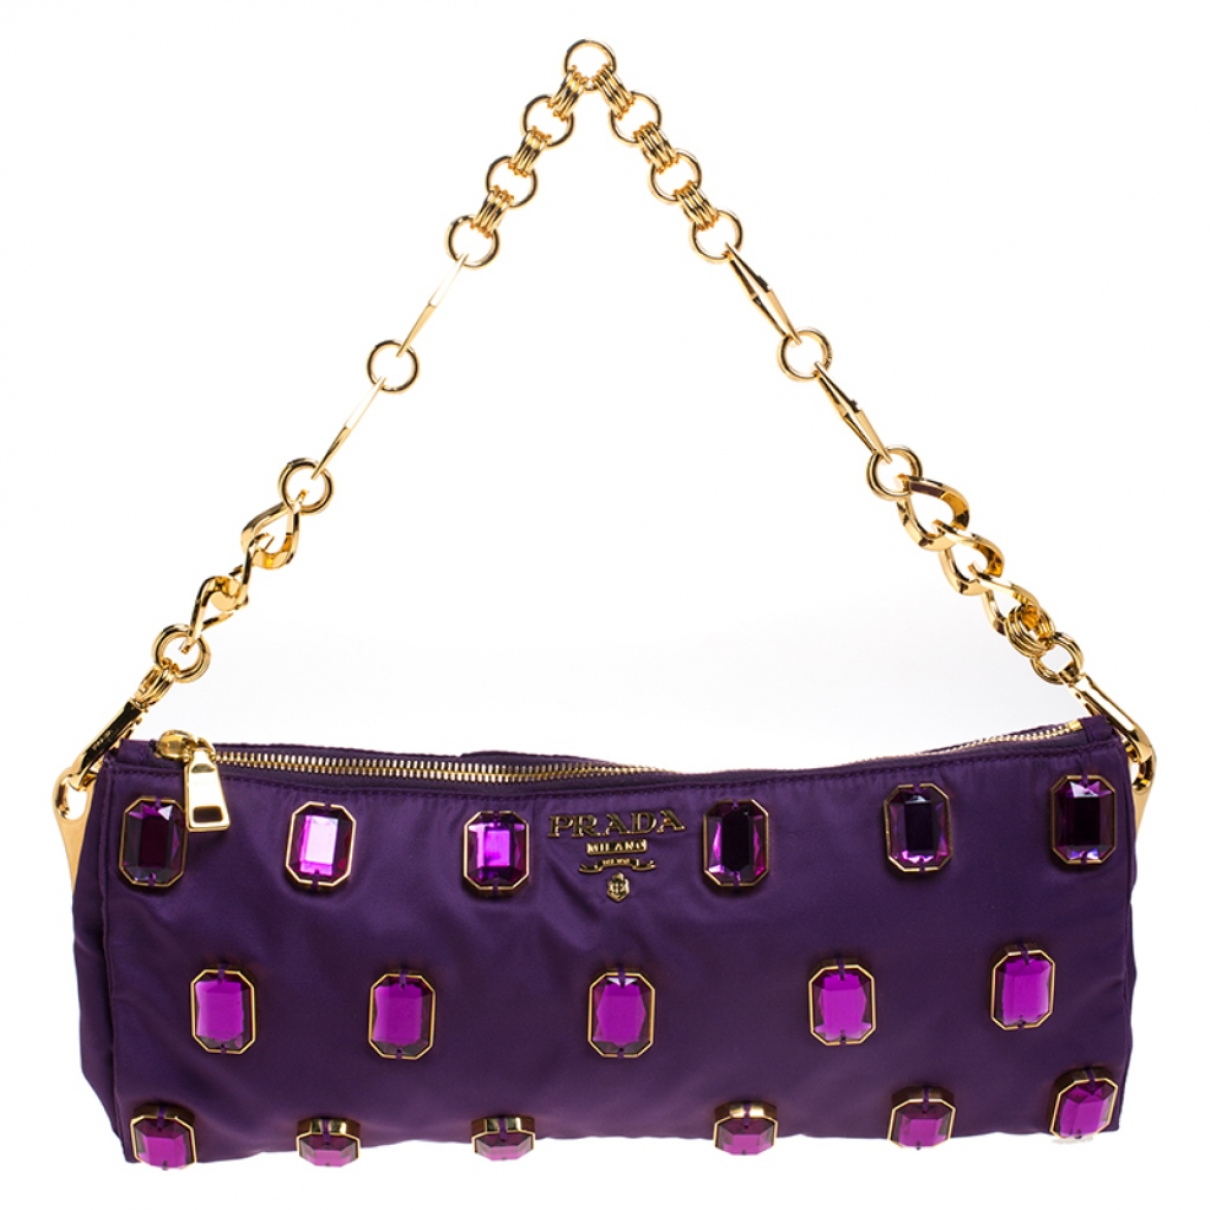 Prada \N Clutch in  Lila Leinen